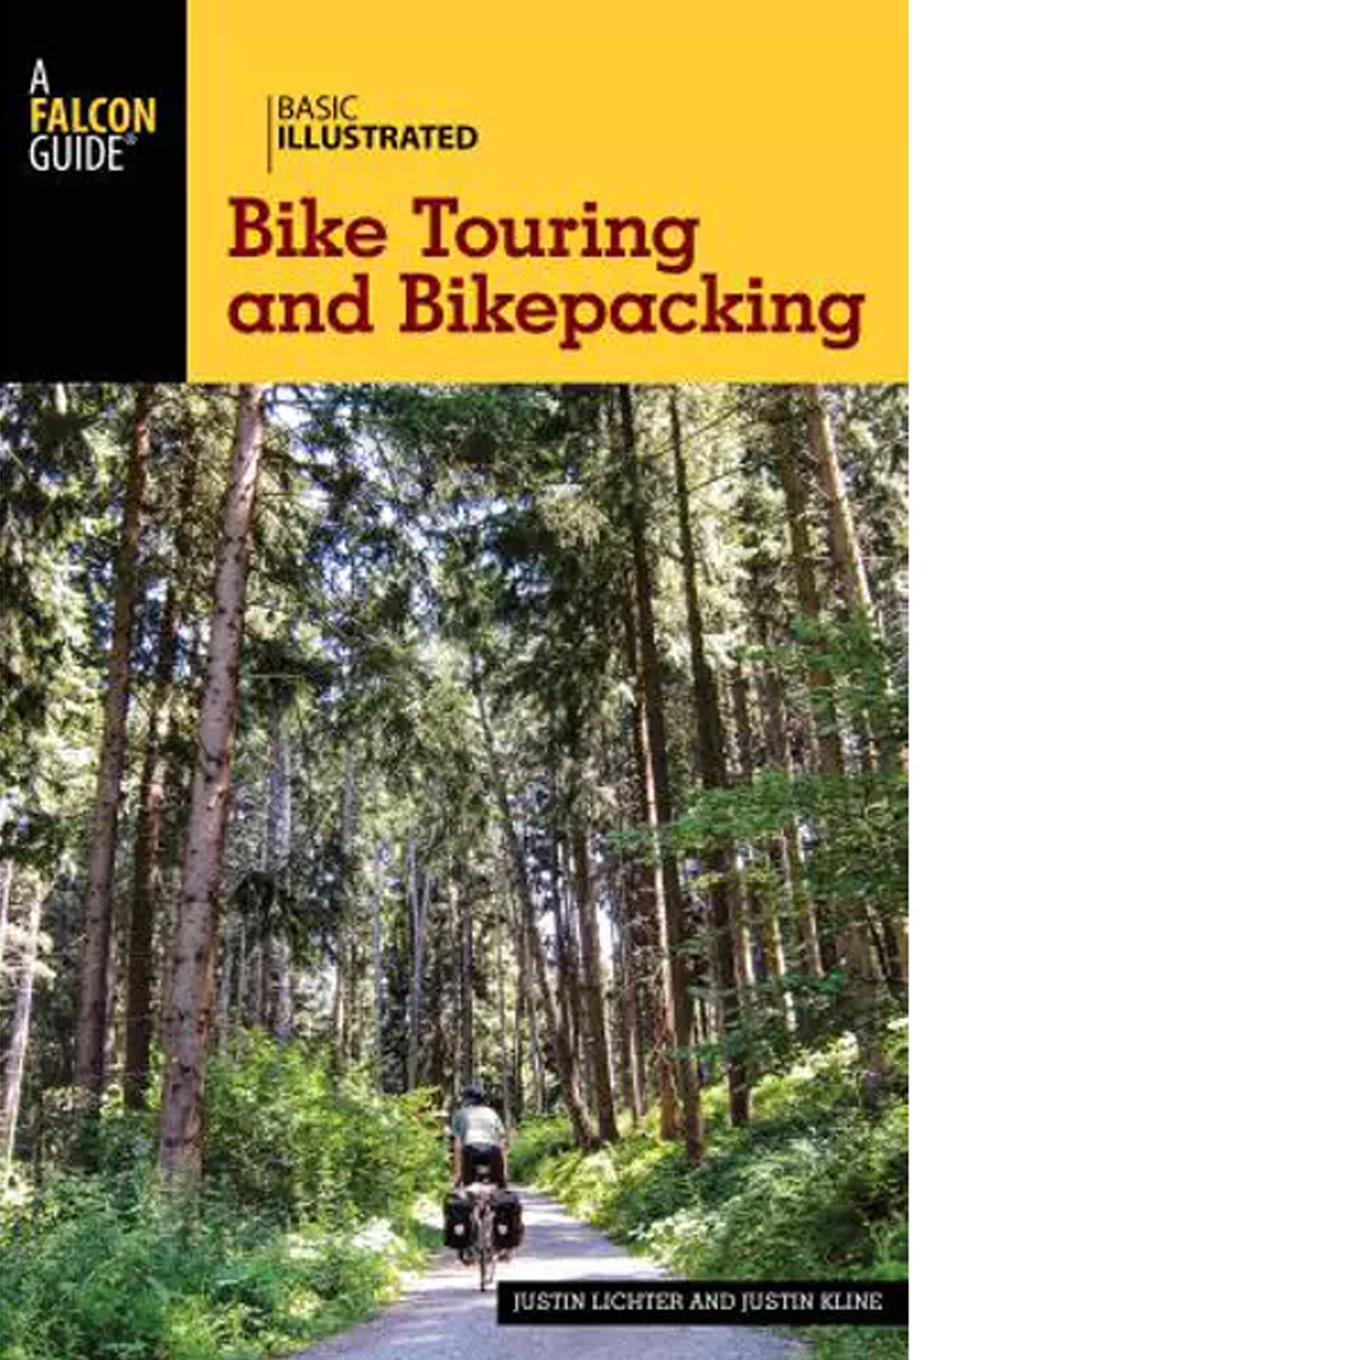 Basic Illustrated Bike Touring and Bikepacking  October 1, 2015  Richly illustrated and information-packed tools for the novice or handy reference for the veteran, BASIC ILLUSTRATED books distill years of knowledge into affordable and visual guides. Whether you're planning a trip or thumbing for facts in the field, the BASIC ILLUSTRATED series shows you what you need to know.   $10.29 Kindle    |    $11.27 Paperback